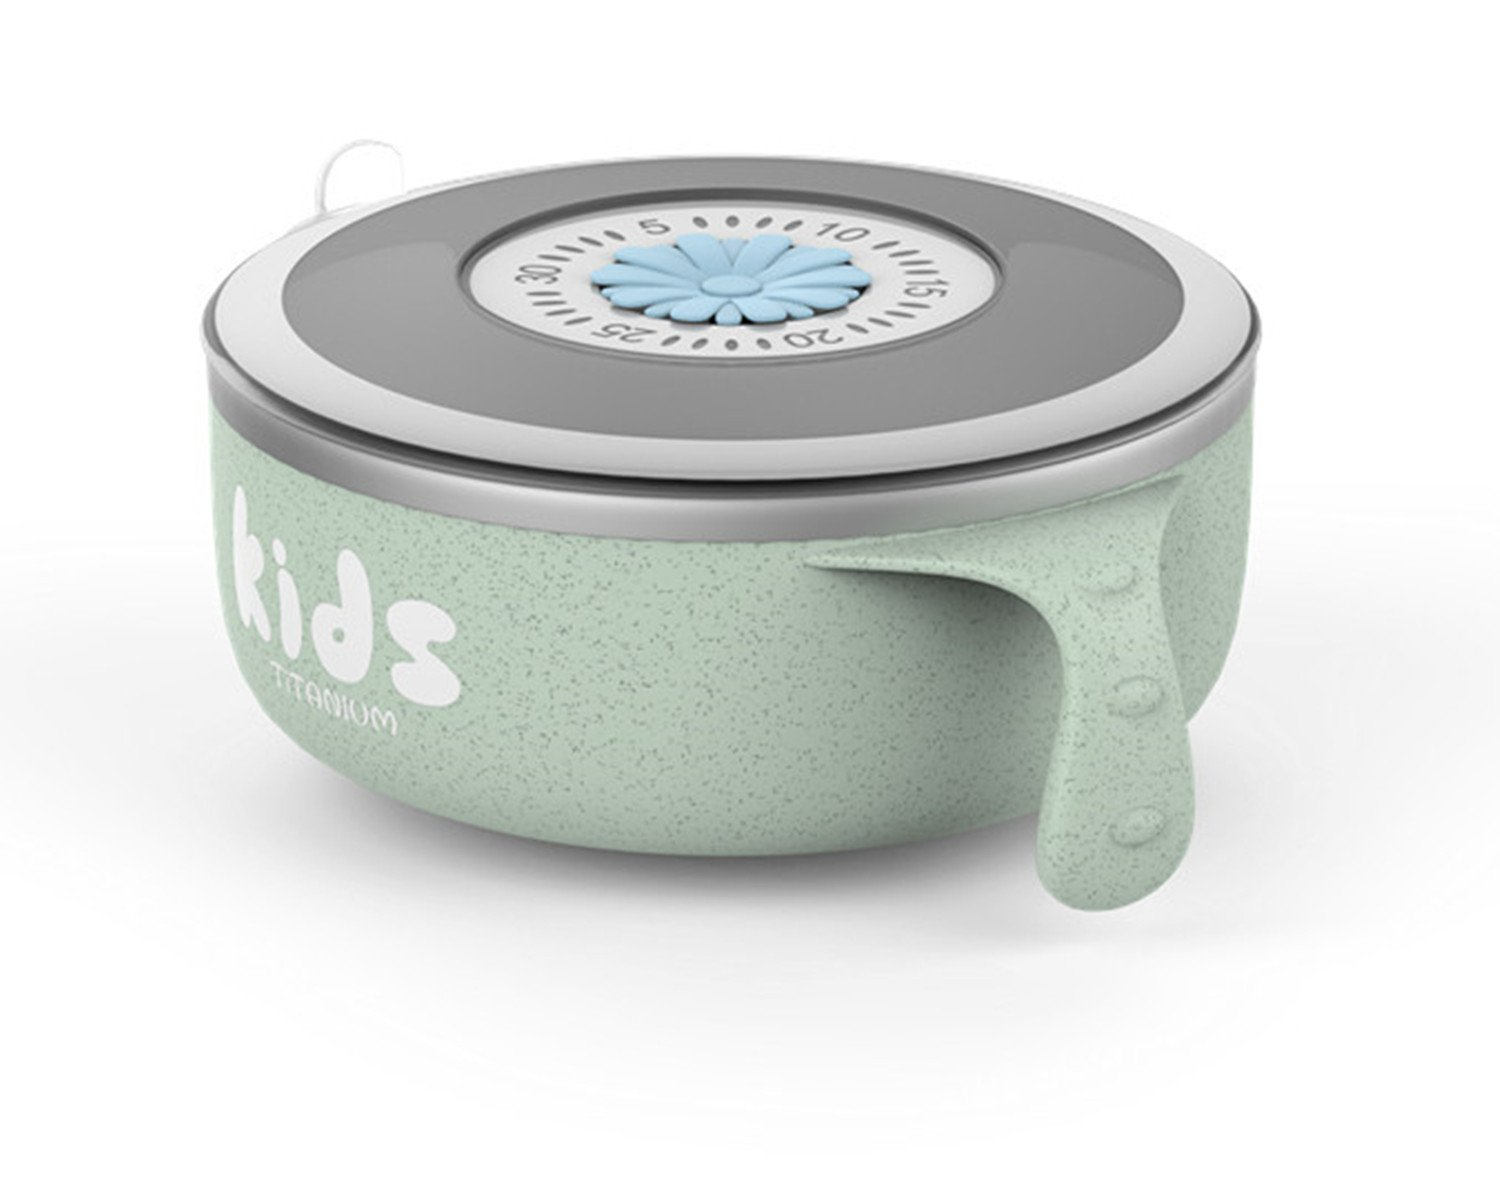 TiLiving Titanium Kids Bowls Made of titanium and Wheat straw more Health and Safety (green)